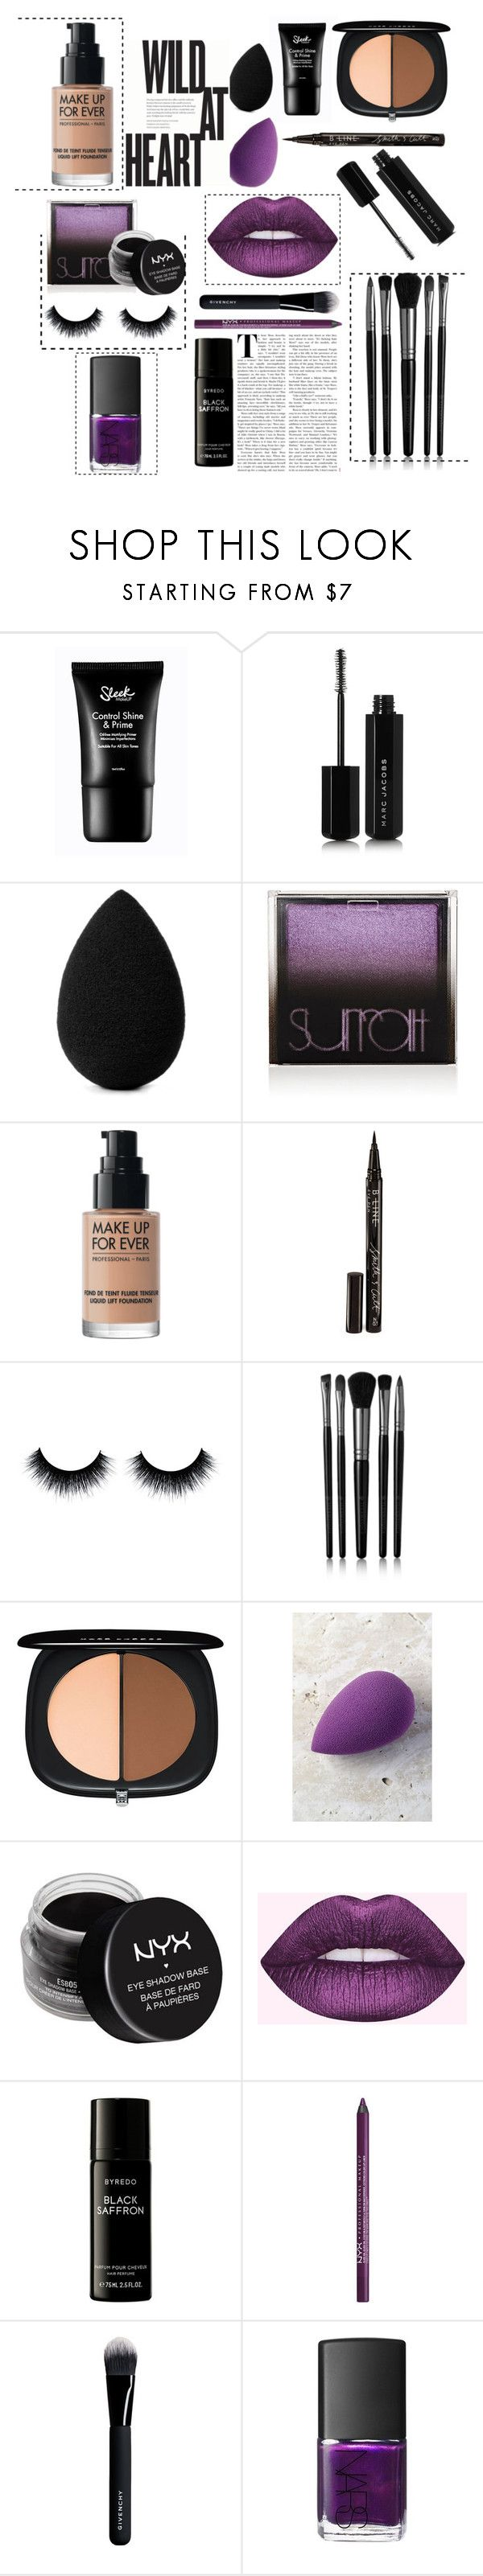 """""""Makeup trend: Edge"""" by iamatortoise ❤ liked on Polyvore featuring beauty, Marc Jacobs, beautyblender, Surratt, MAKE UP FOR EVER, Smith & Cult, Illamasqua, NYX, Liberty and Givenchy"""